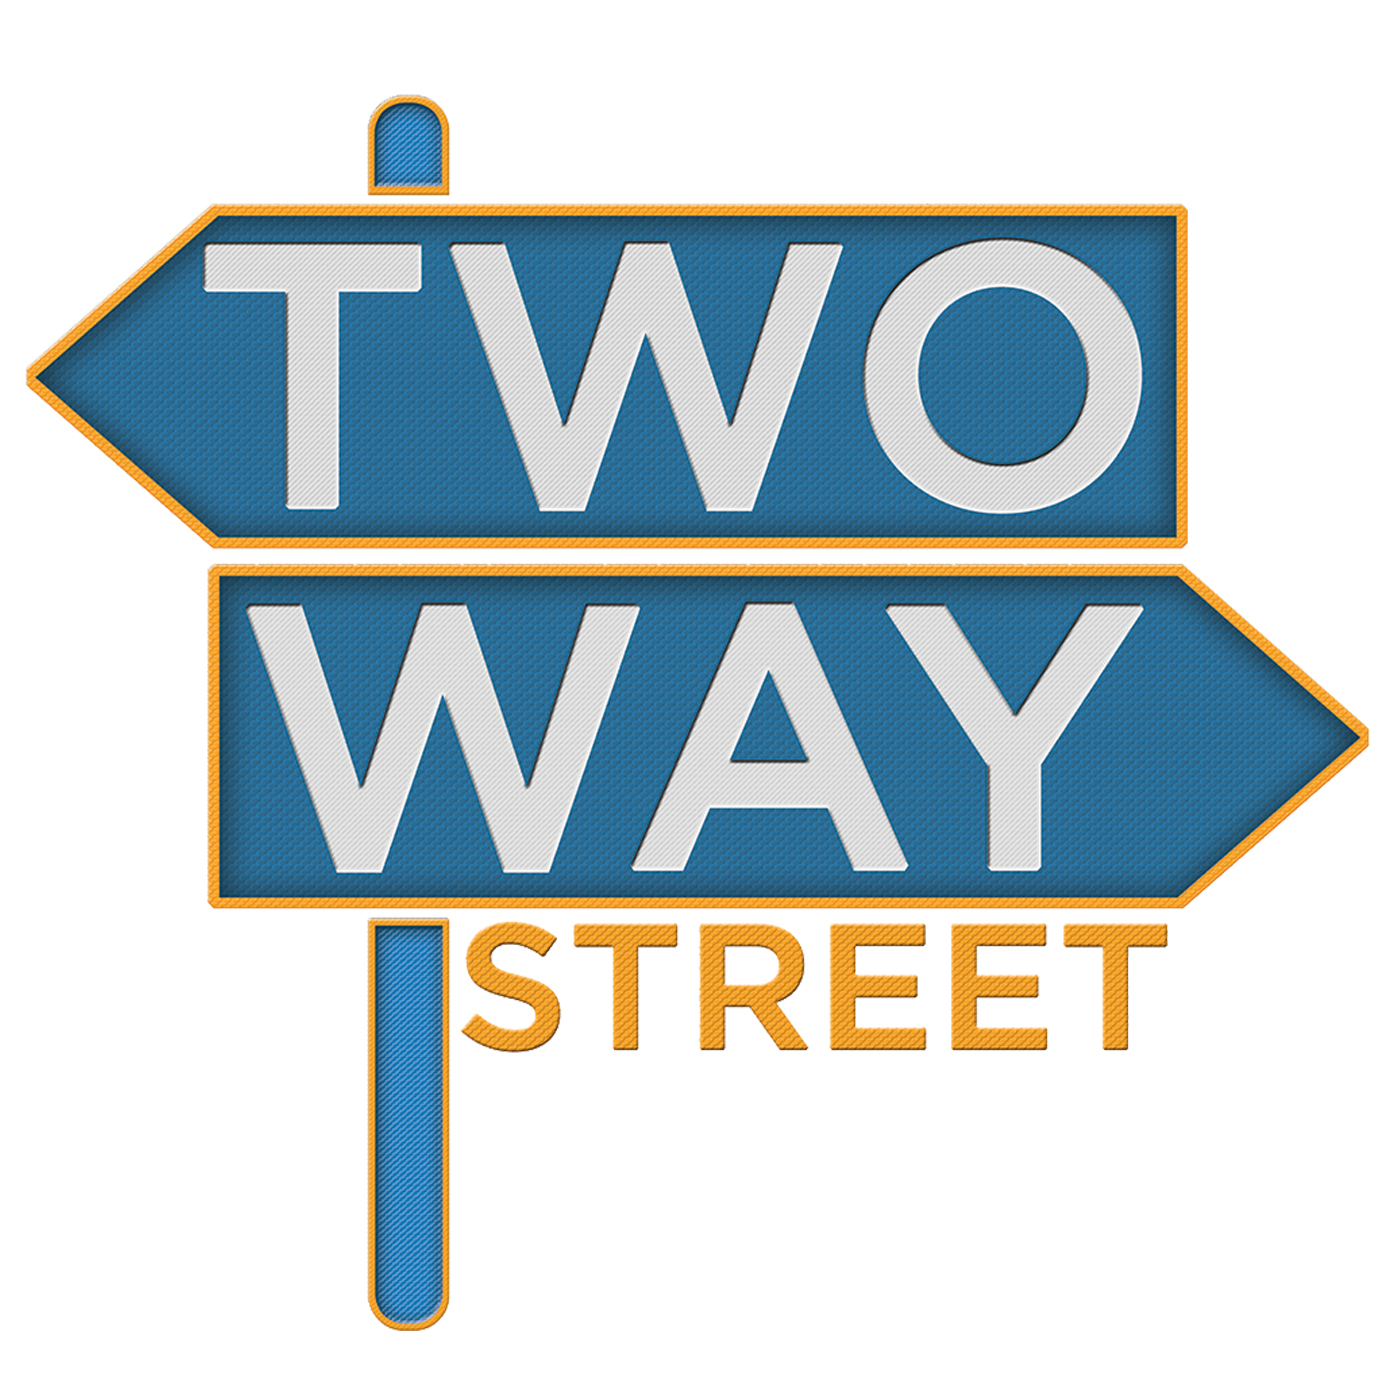 GPB's Two Way Street